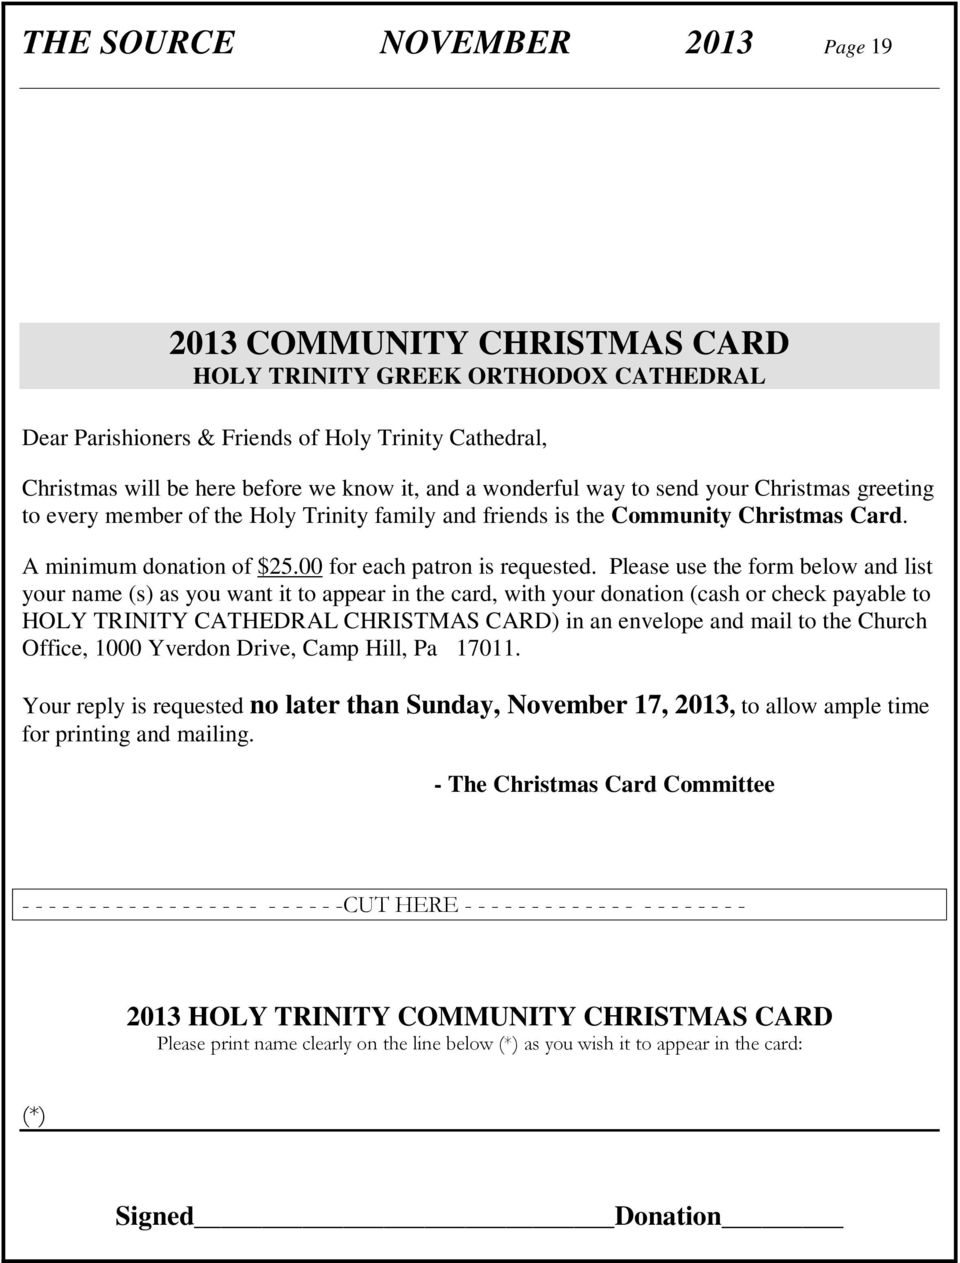 Please use the form below and list your name (s) as you want it to appear in the card, with your donation (cash or check payable to HOLY TRINITY CATHEDRAL CHRISTMAS CARD) in an envelope and mail to